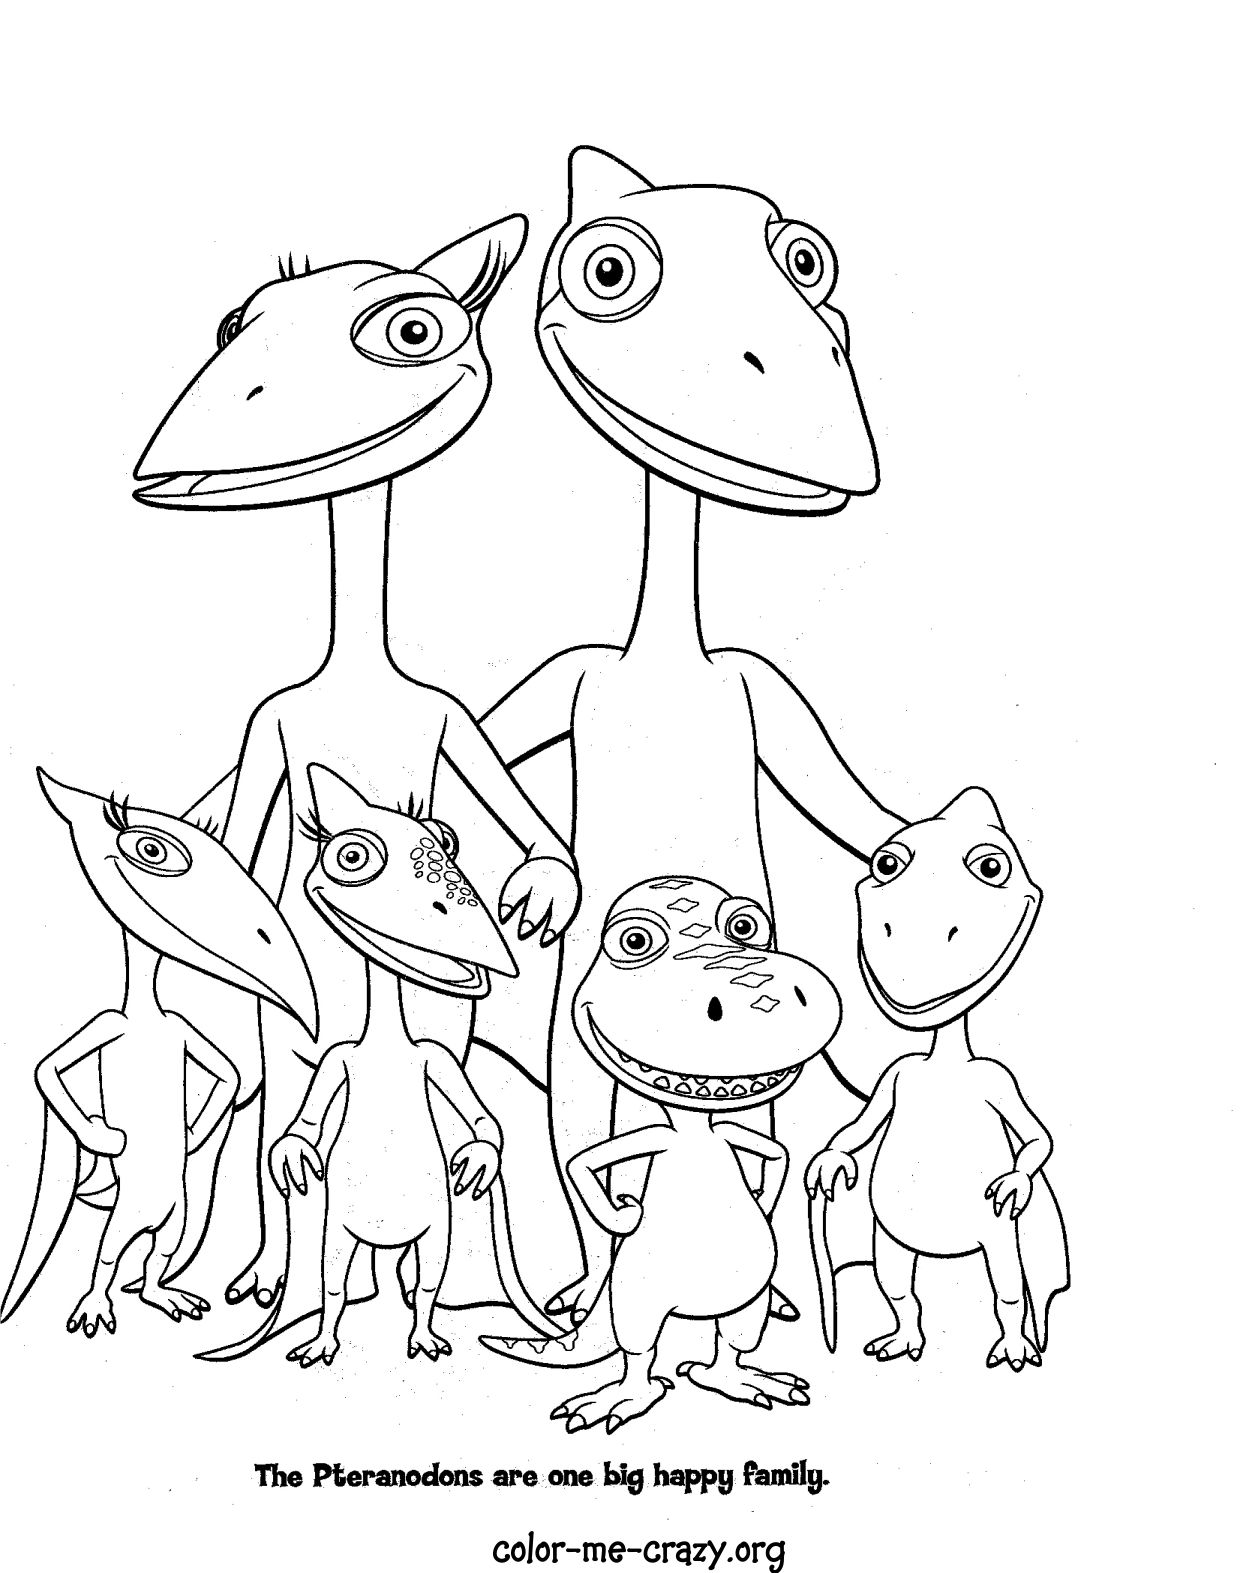 Comprehensive image for free printable dinosaur coloring pages